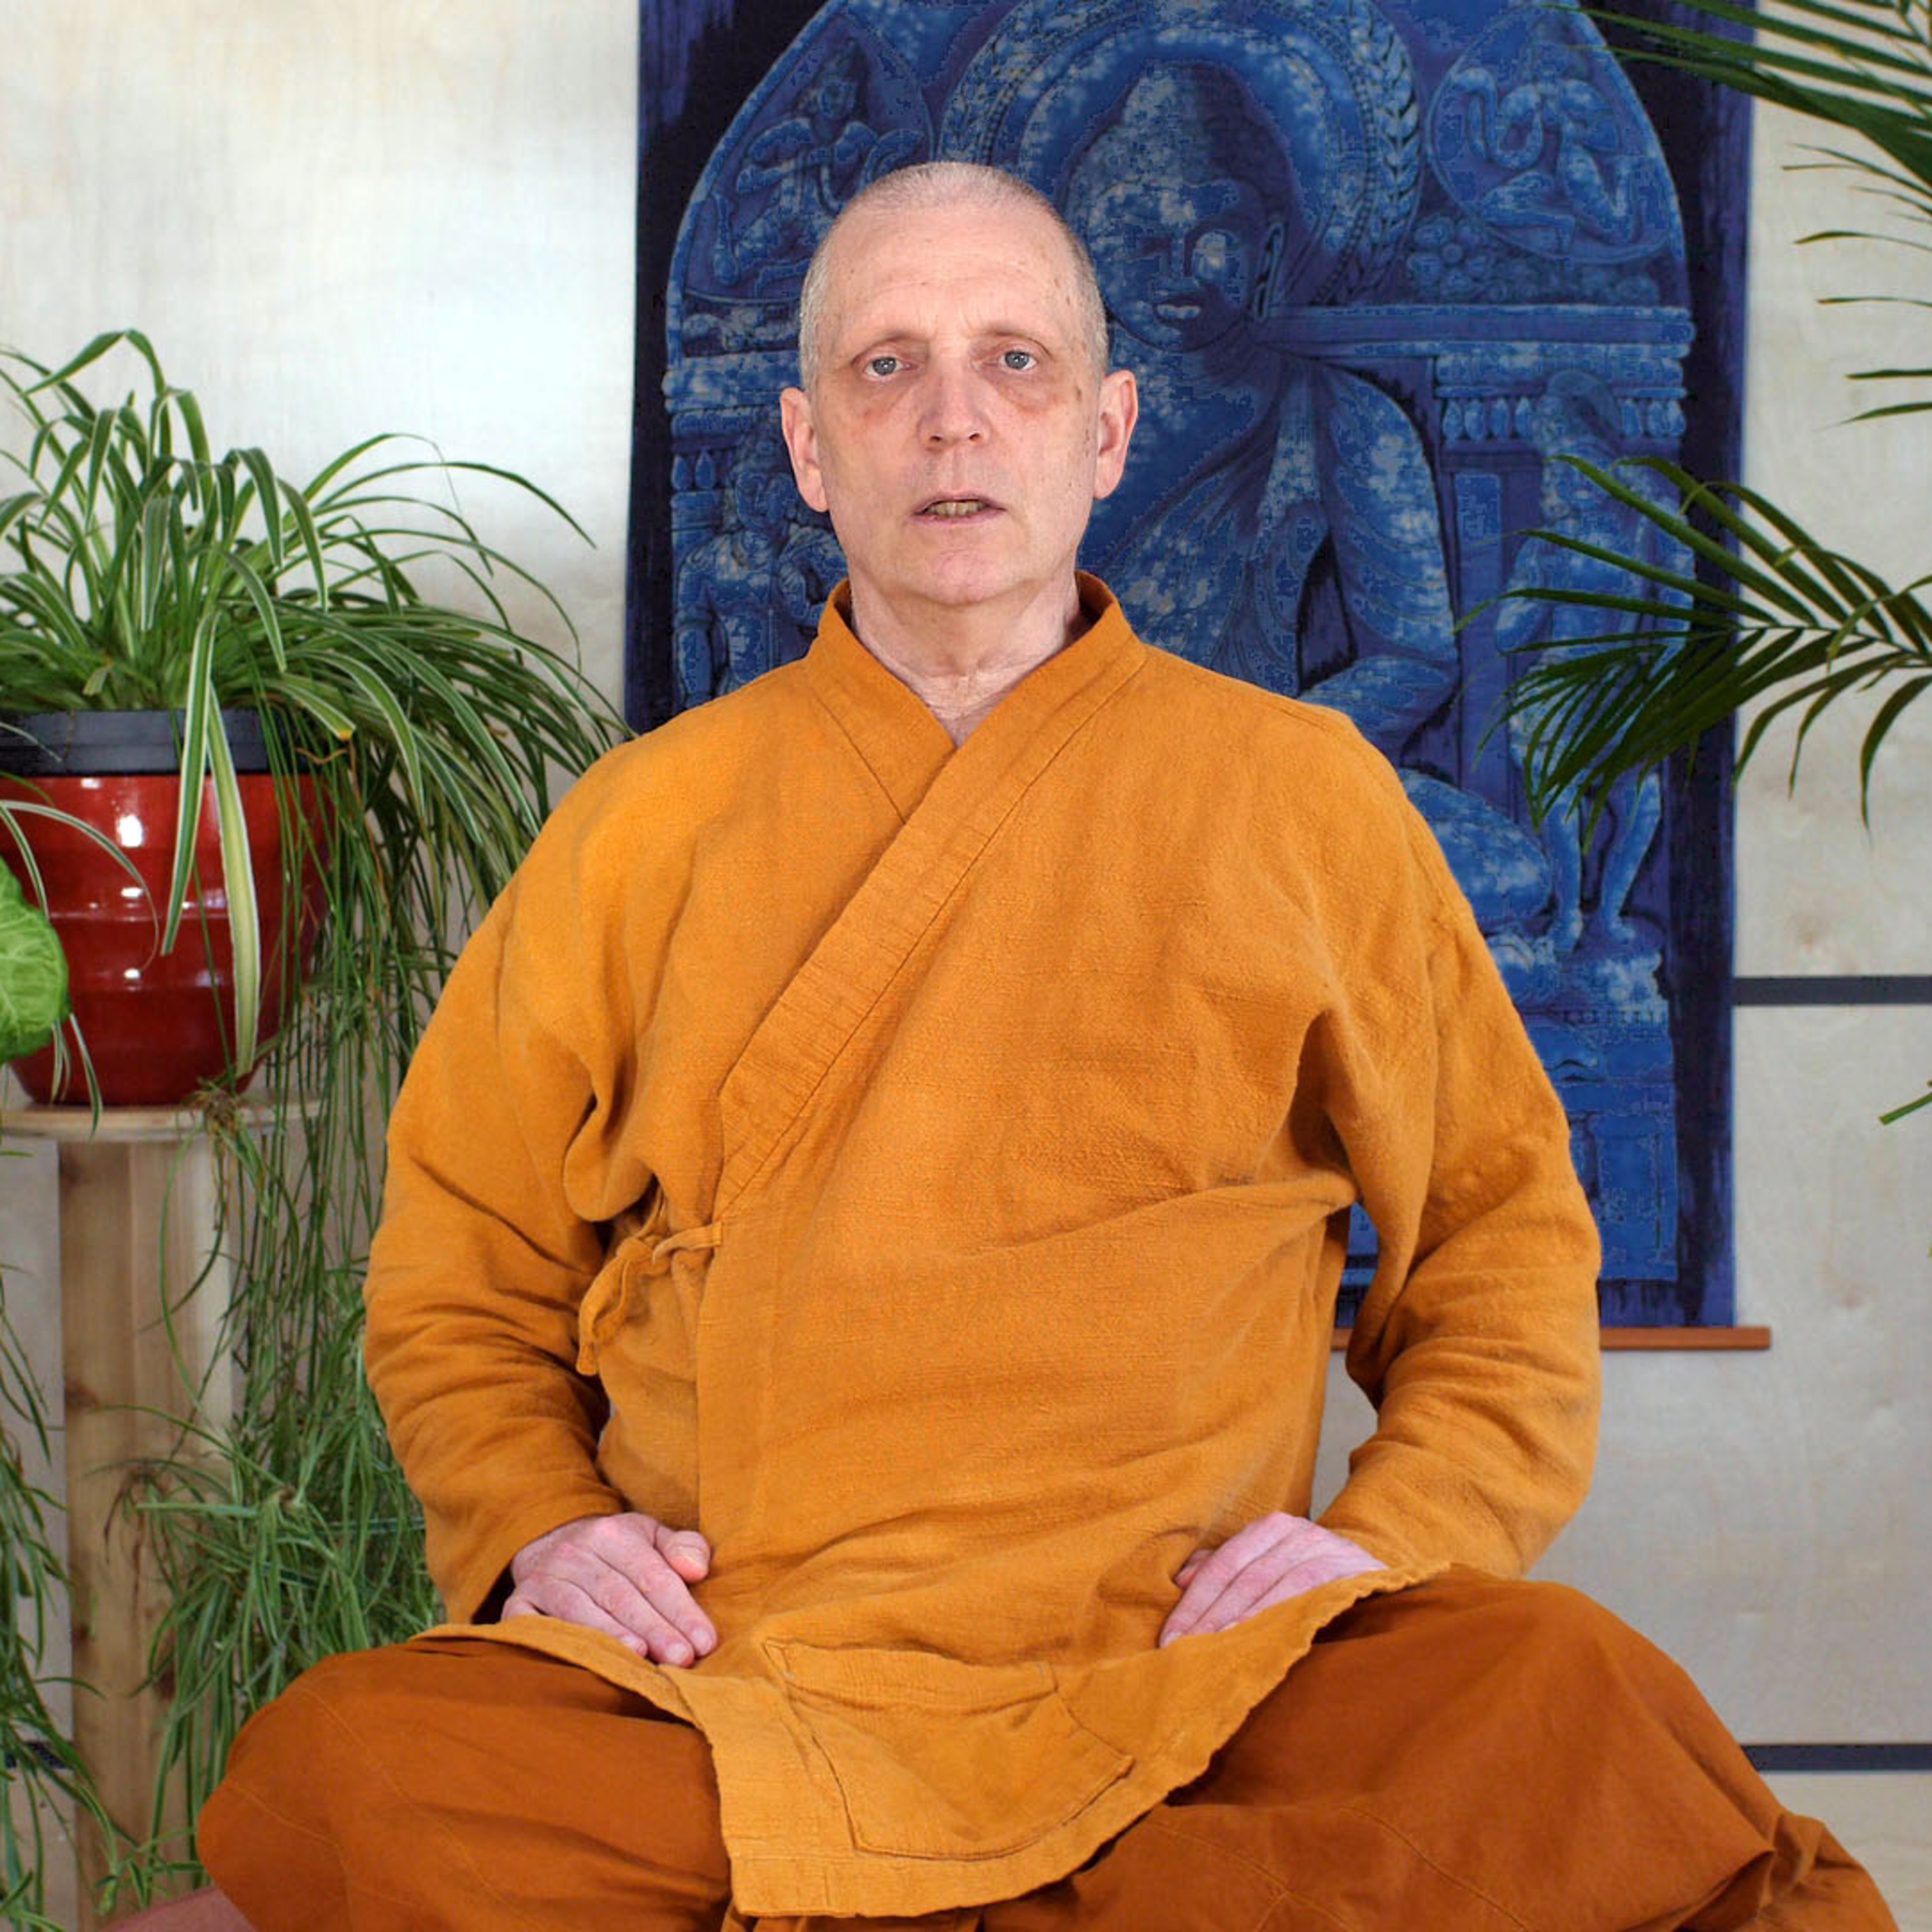 The Noble Eightfold Path (1): Right View